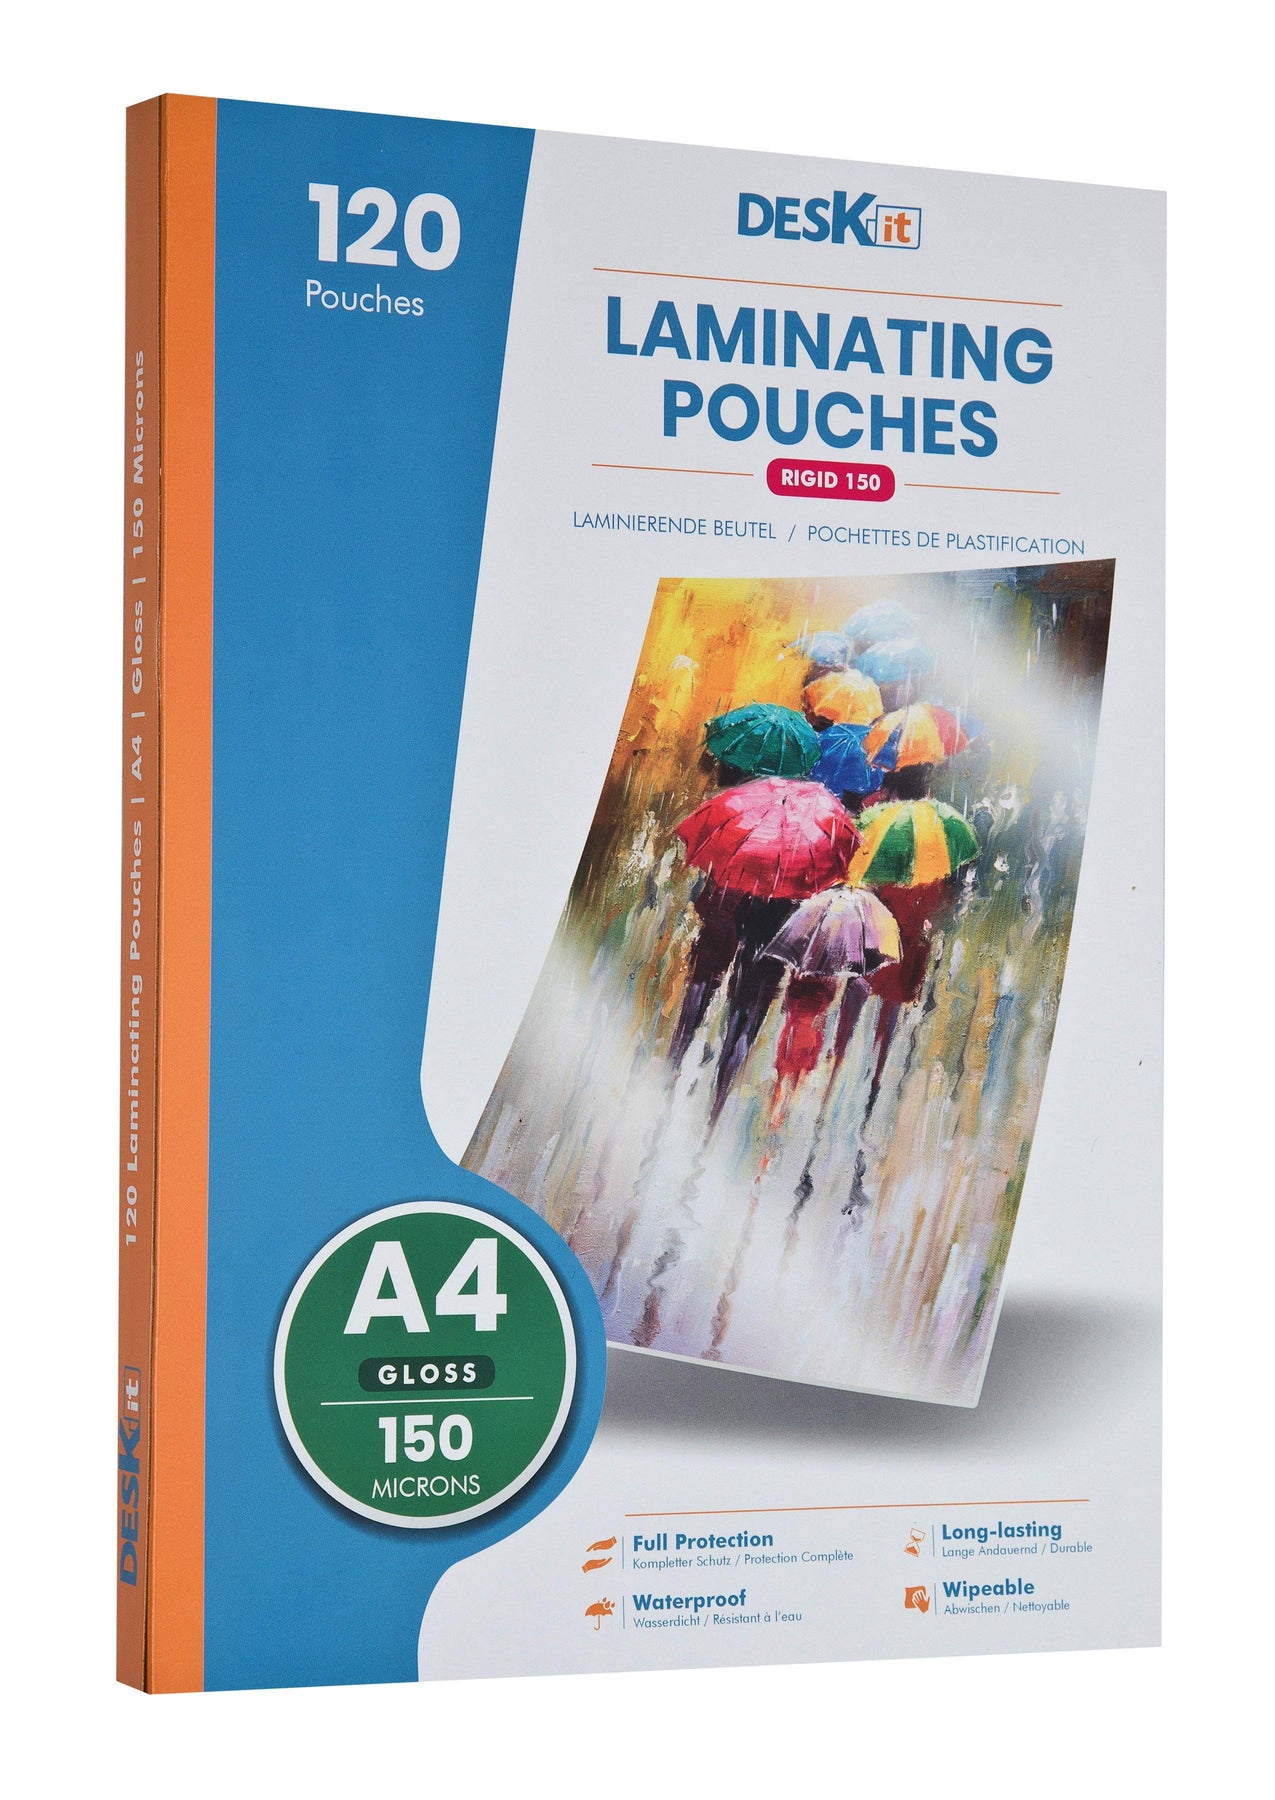 A4 Laminating Pouches Paper Home//Office ID Card GLOSS CHOOSE QUANTITY UK